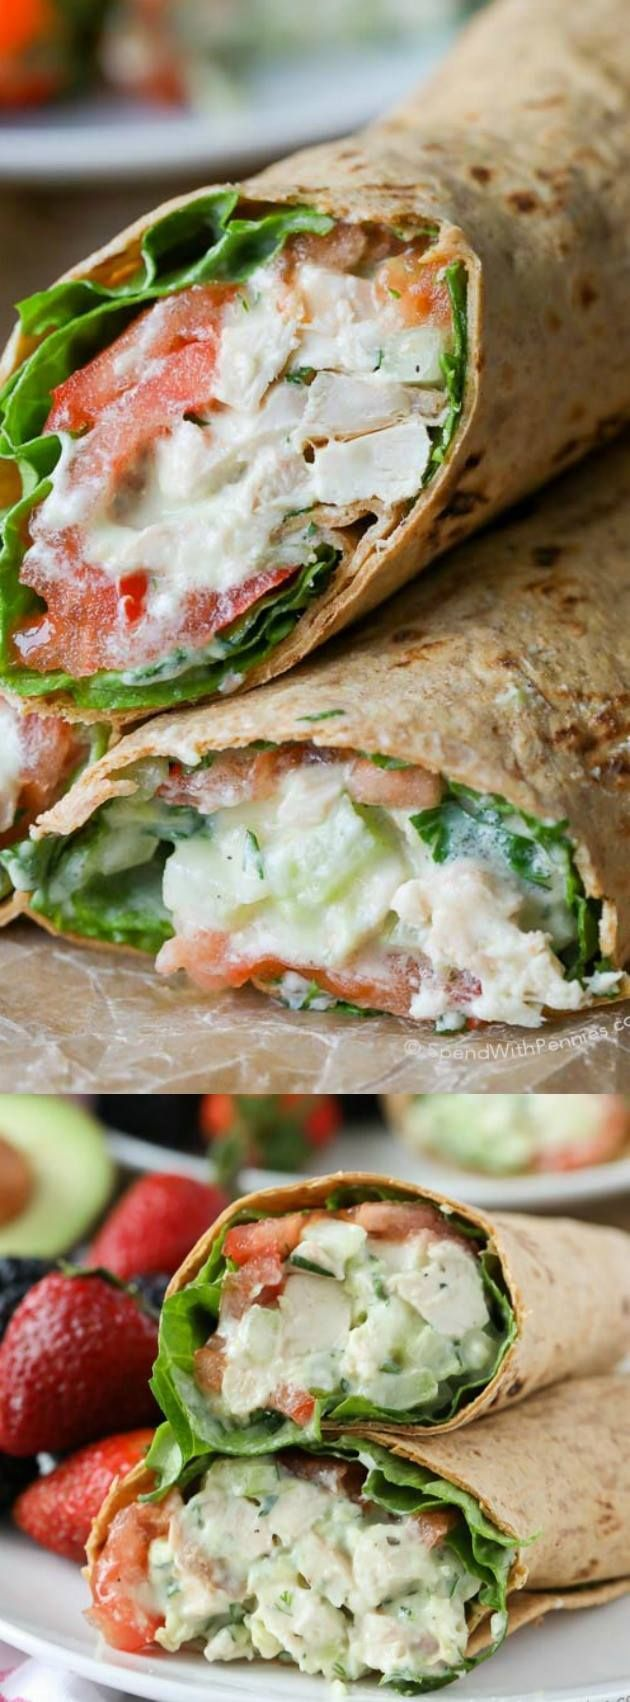 This Avocado Ranch Chicken Salad Wrap recipe from Spend With Pennies is loaded w